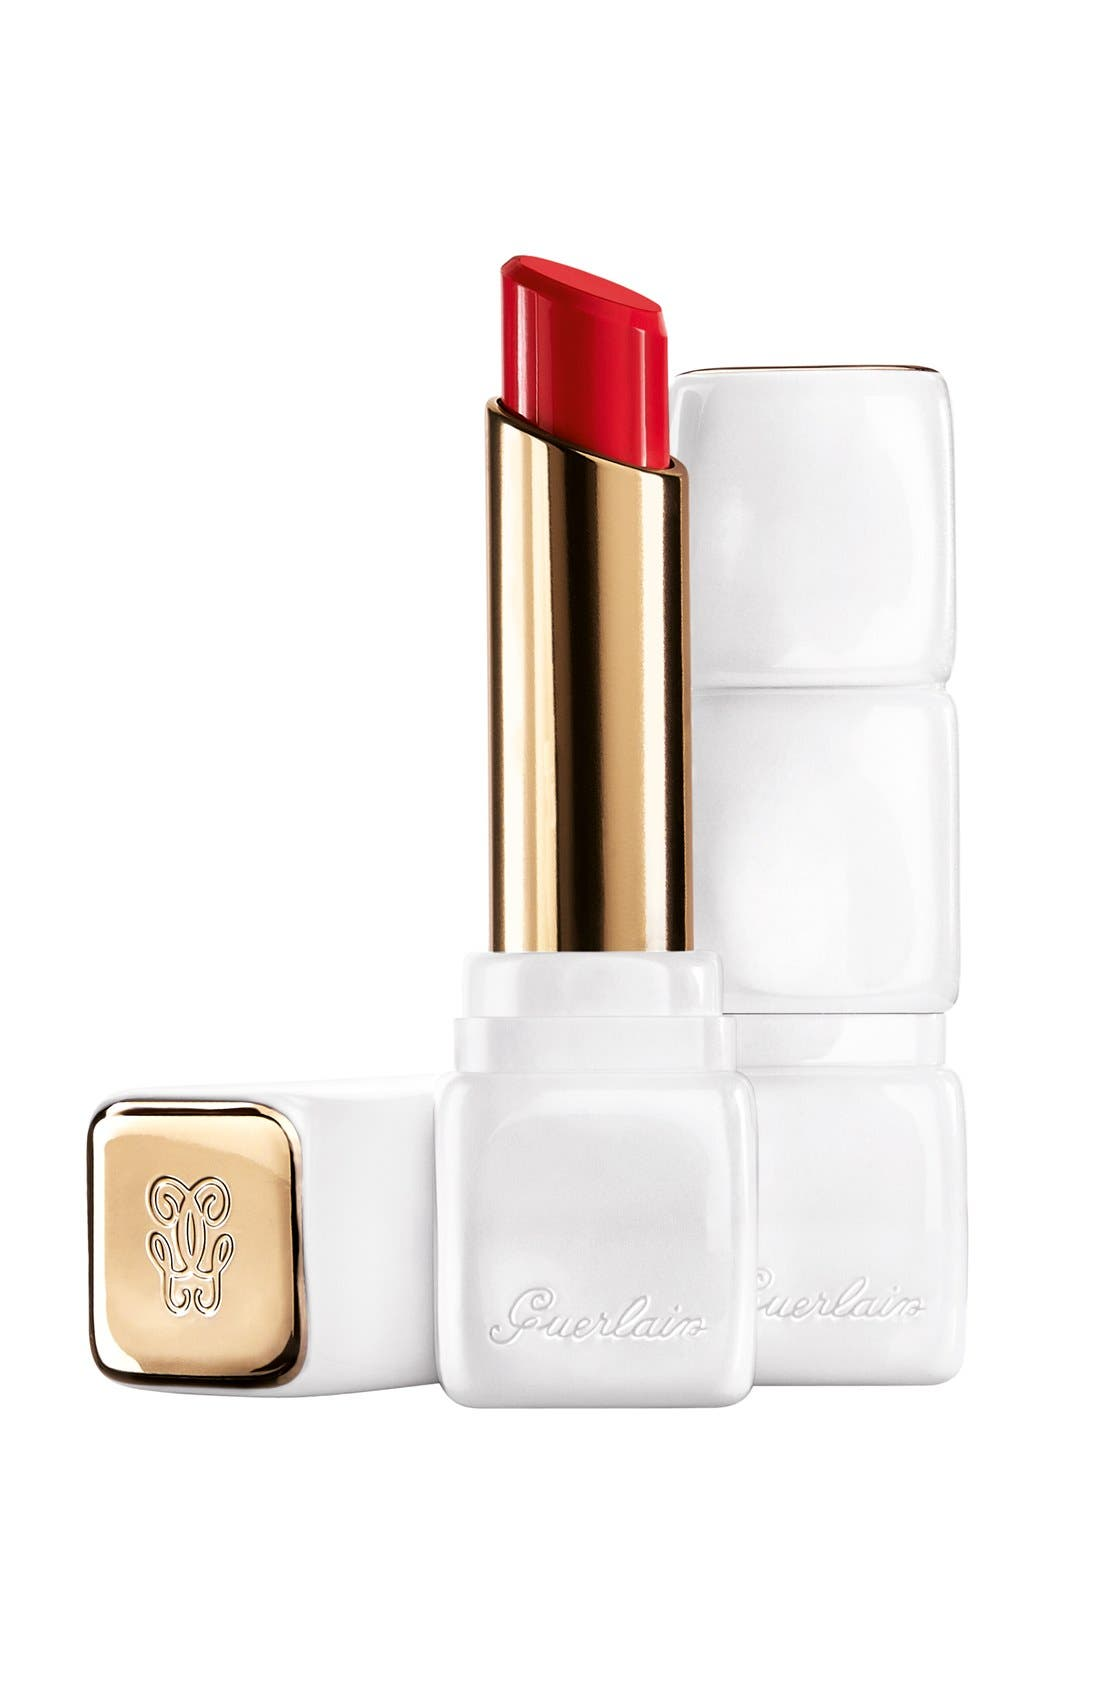 Guerlain 'Bloom of Rose - KissKiss' Roselip Hydrating & Plumping Tinted Lip Balm